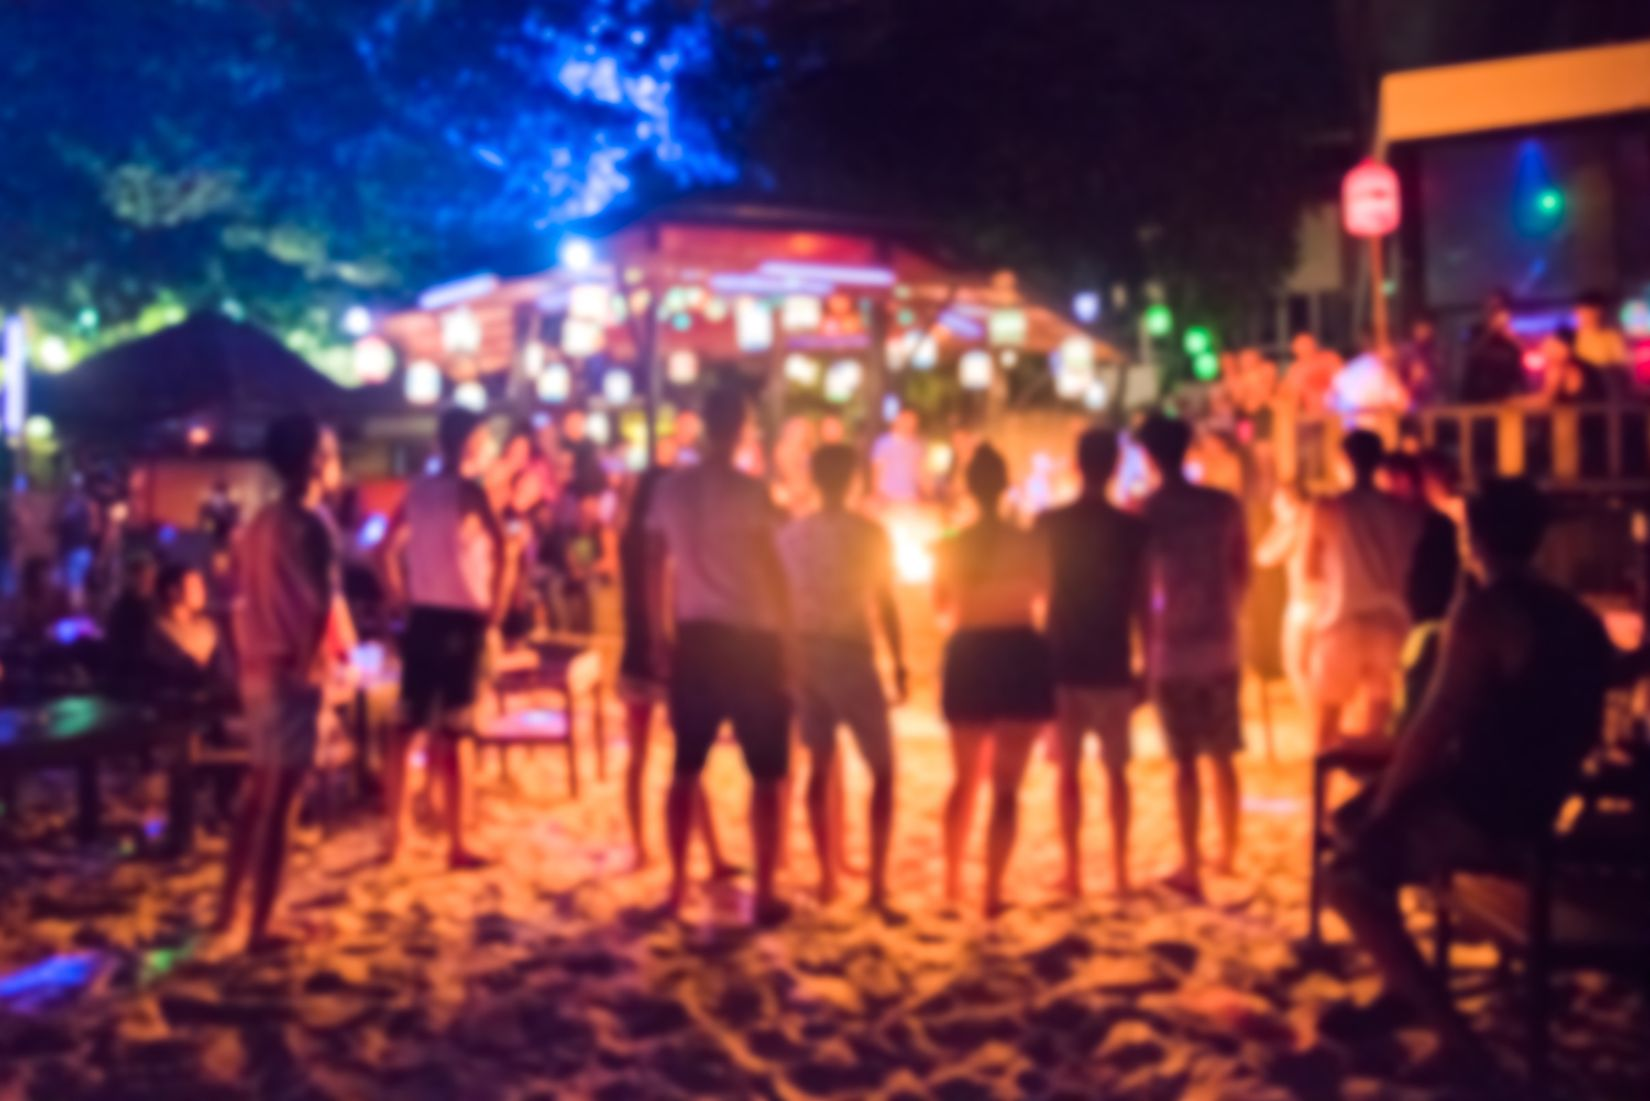 Beach lights at night can disorient marine wildlife. Image credit: aon168/Shutterstock.com